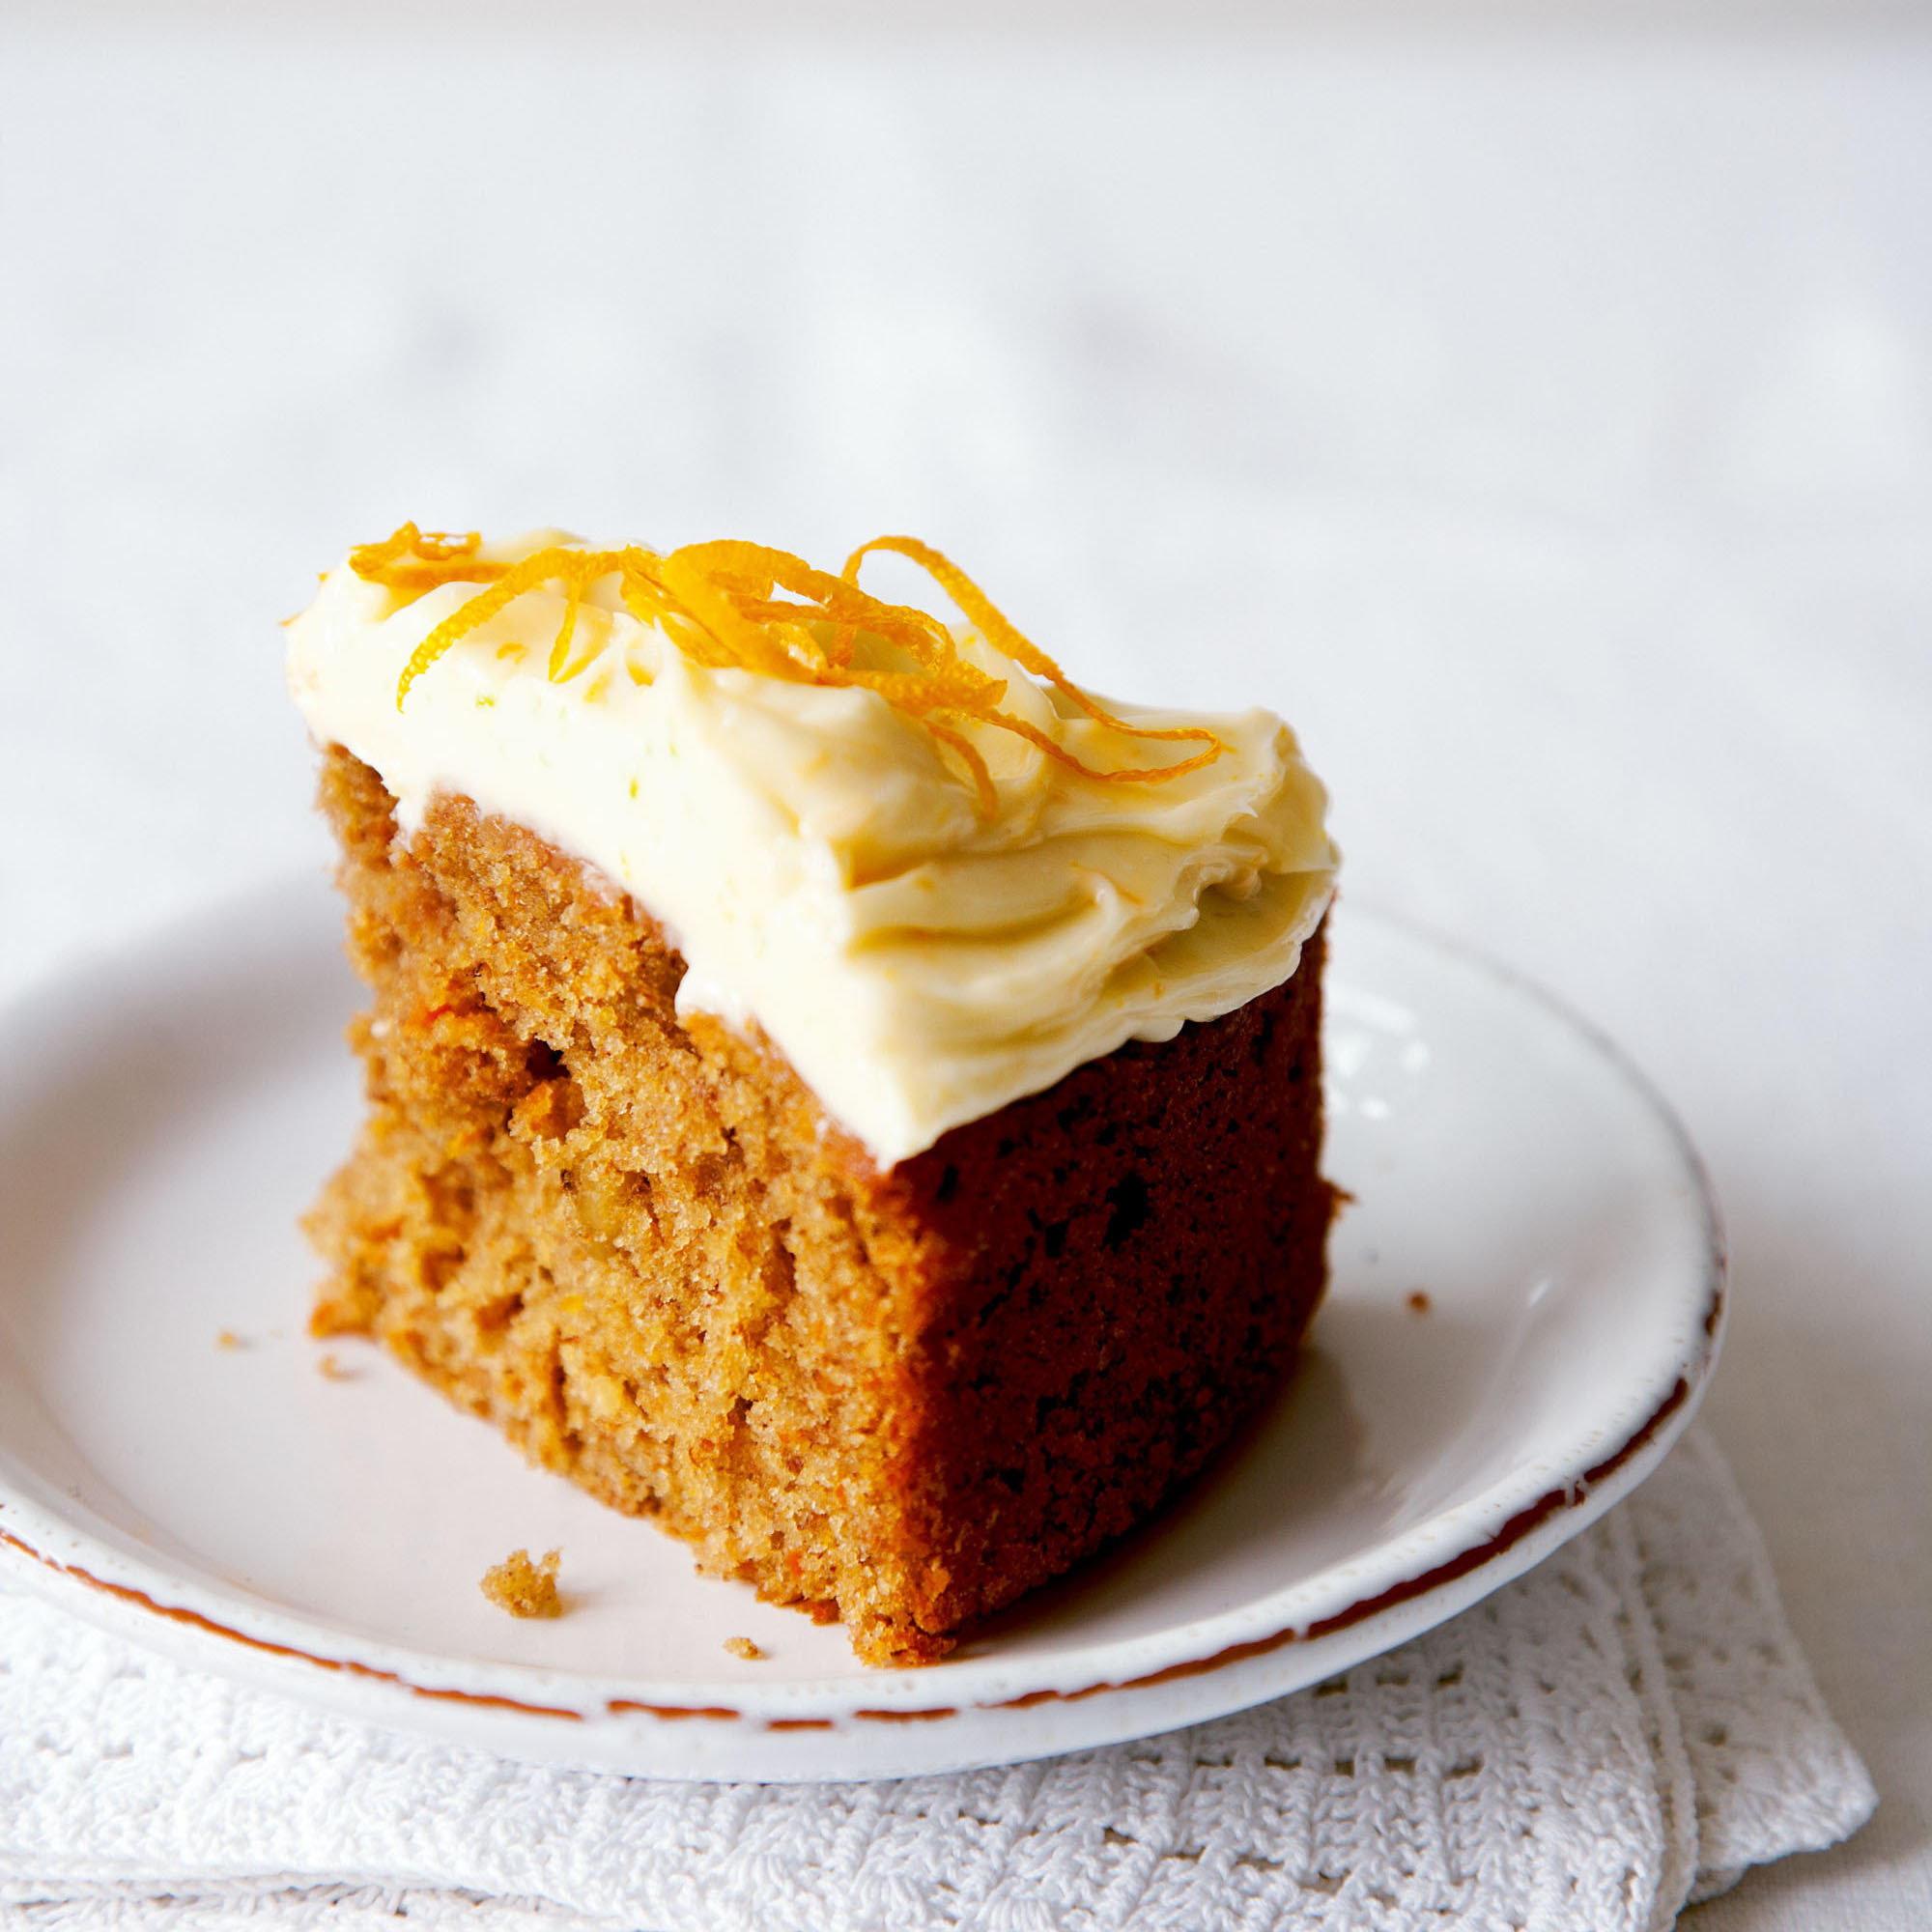 Cake Frosting Recipe  Carrot cake with lemon cream cheese frosting recipe